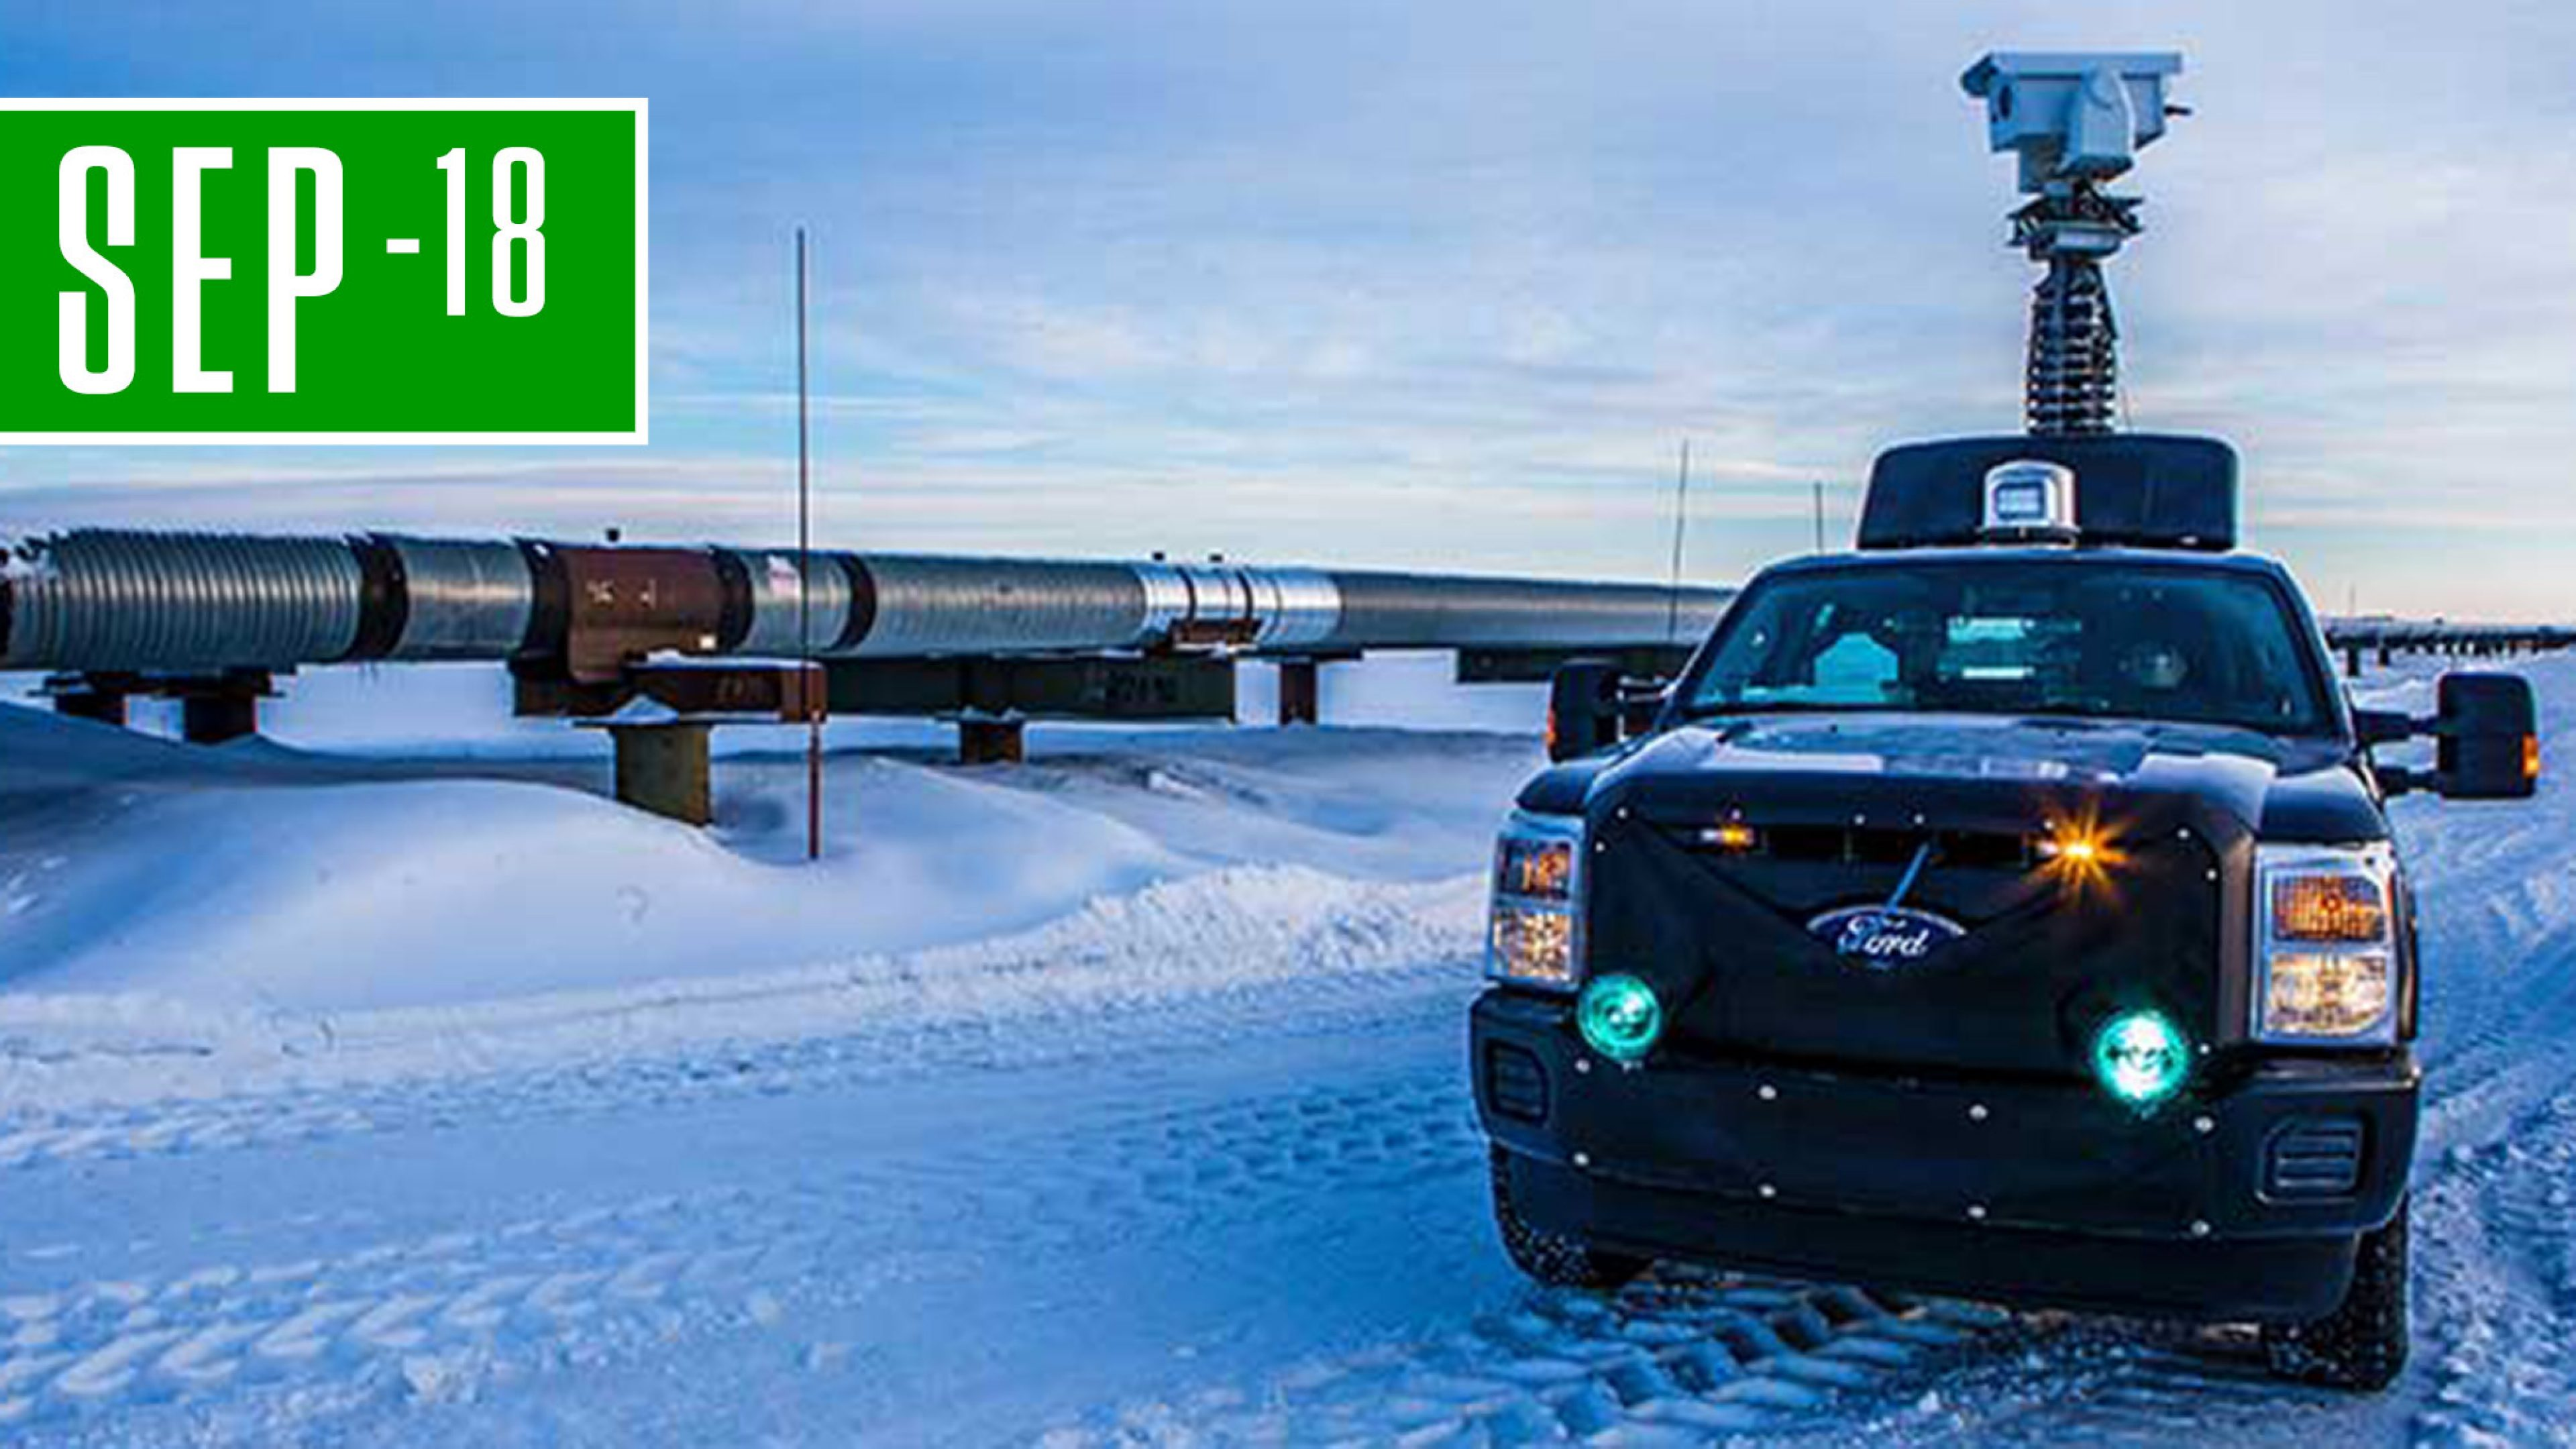 New technology, such as infra red thermal imaging equipment seen here in Alaska, can help detect methane emissions